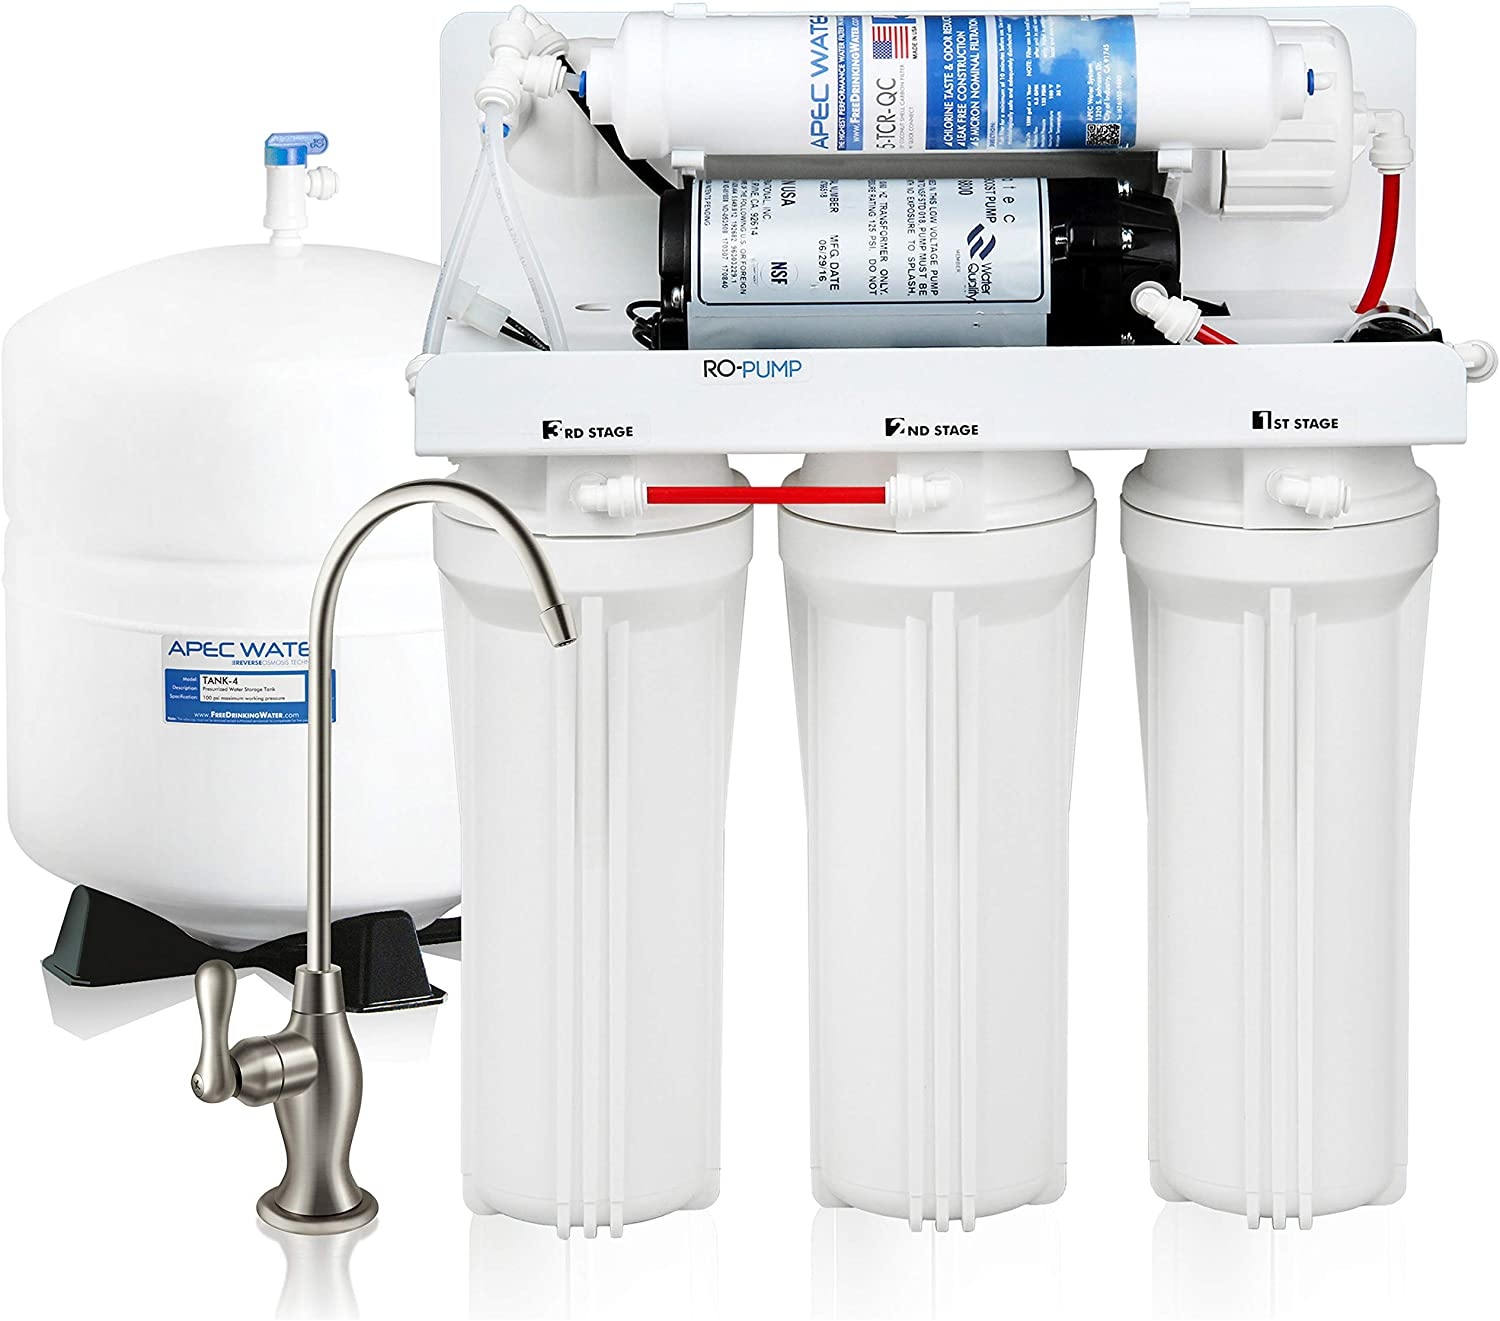 APEC Water RO-PUMP Reverse Osmosis System